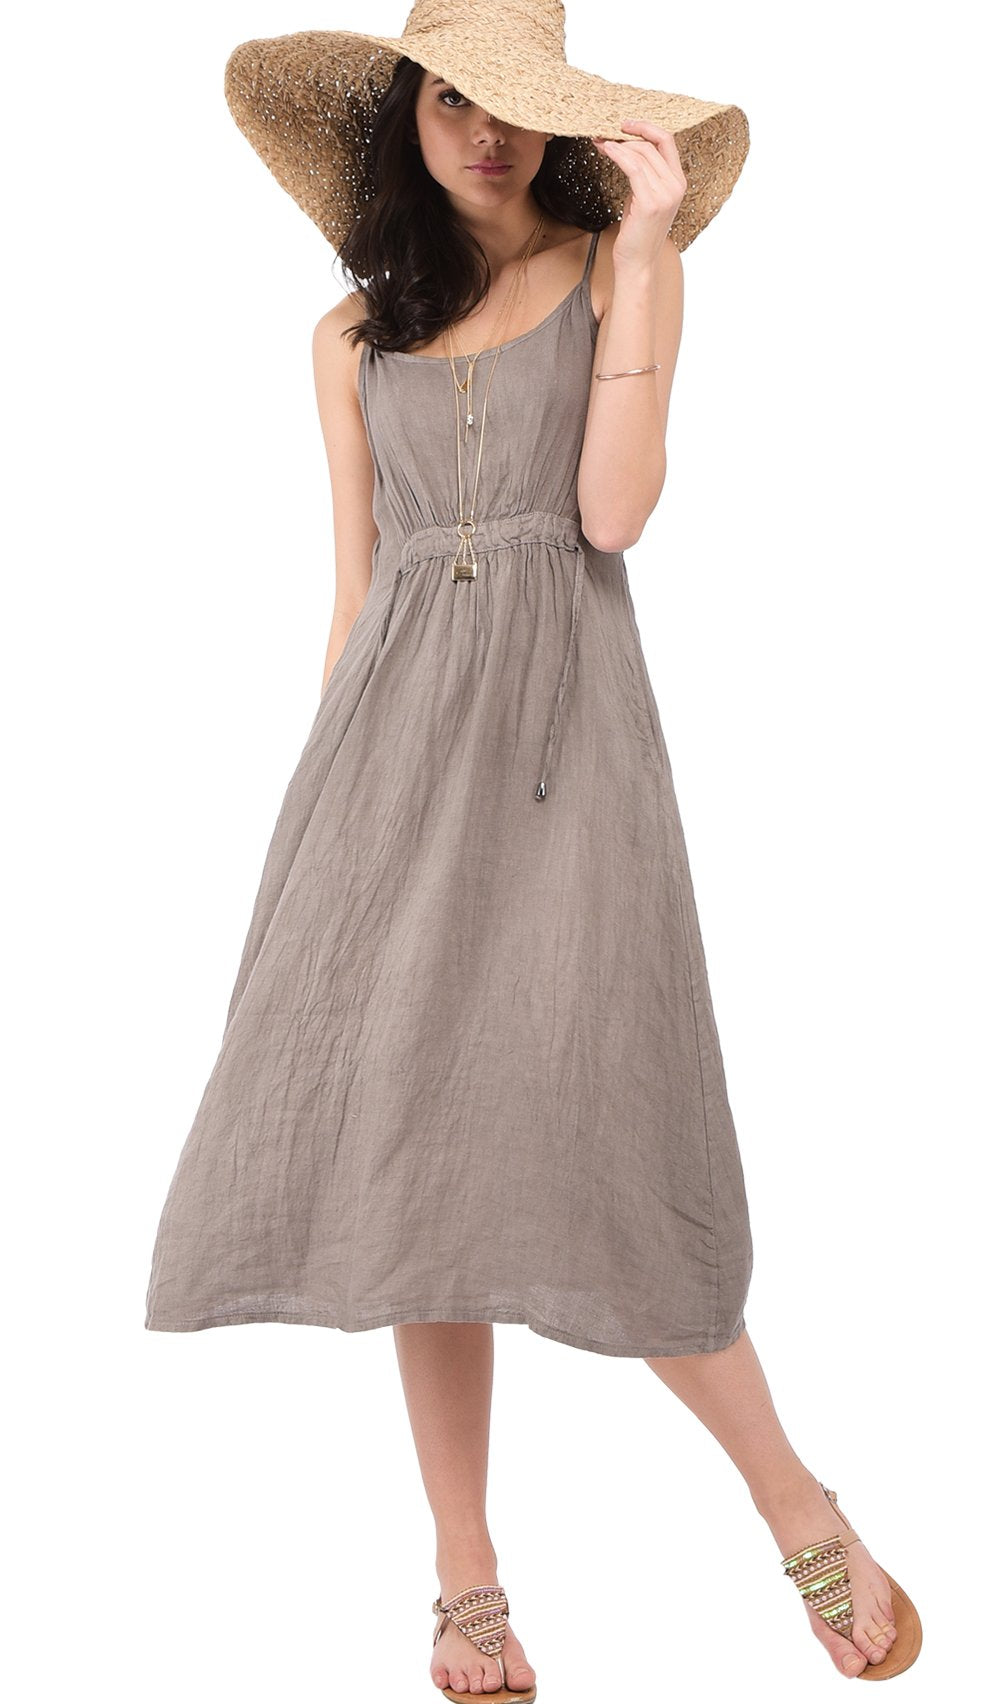 LONG STRAPPED DRESS WITH FRONT LACING AND POCKETS